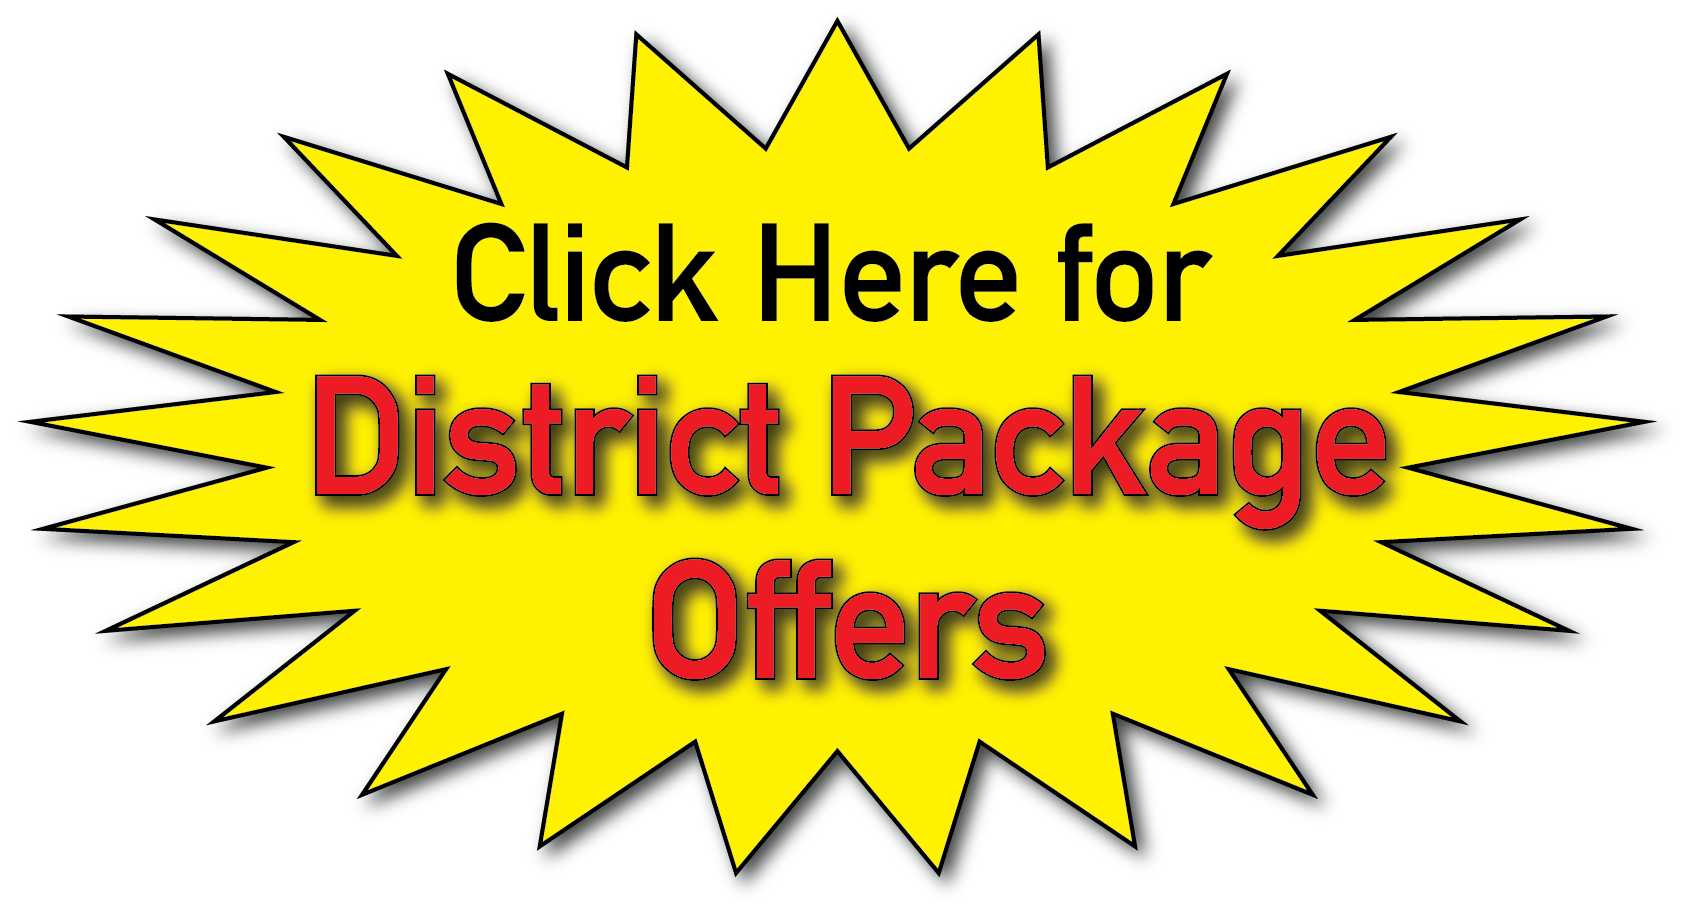 StarBursts_District_Package